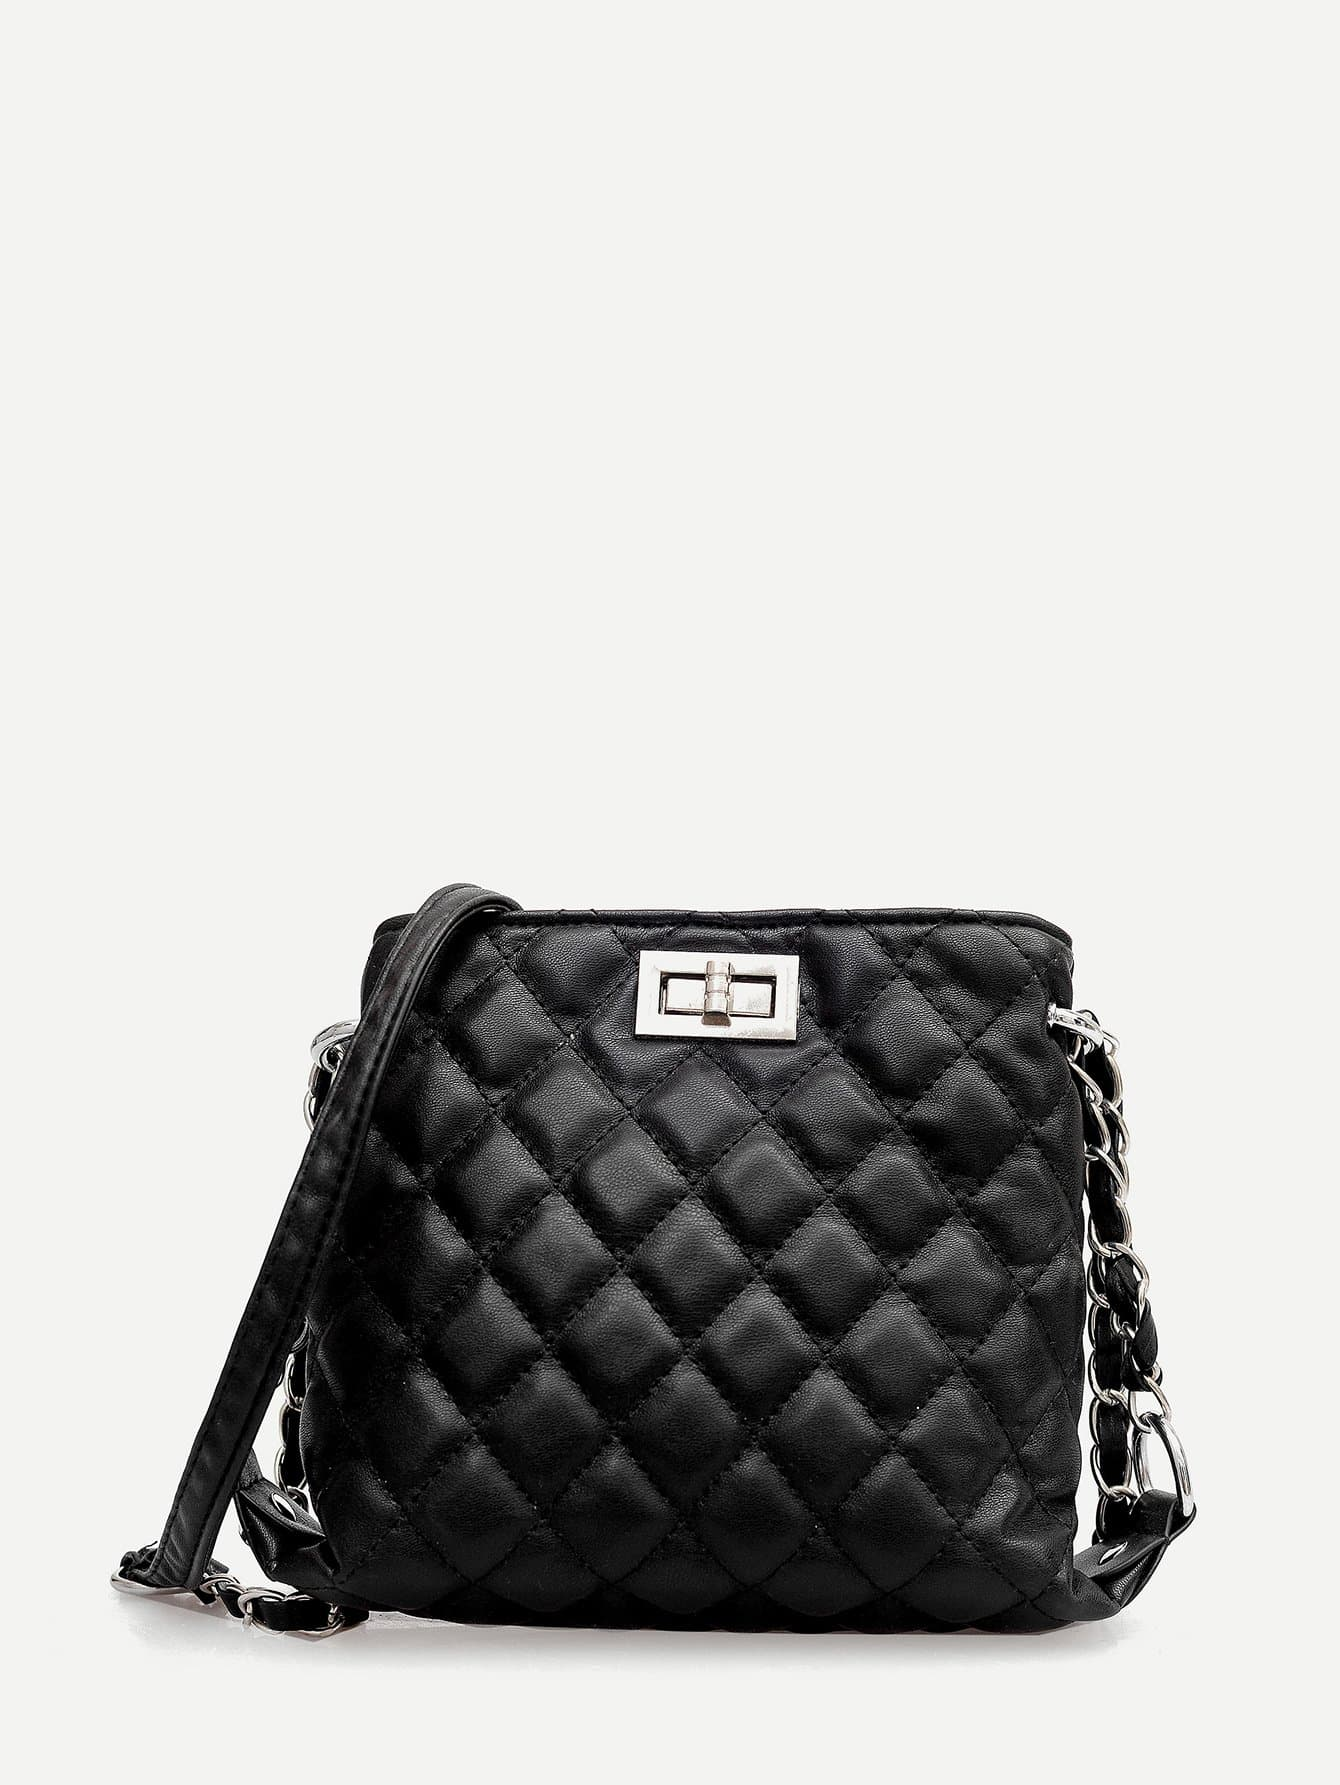 Quilted Detail Twist Lock Chain Bag metal lock quilted chain bag